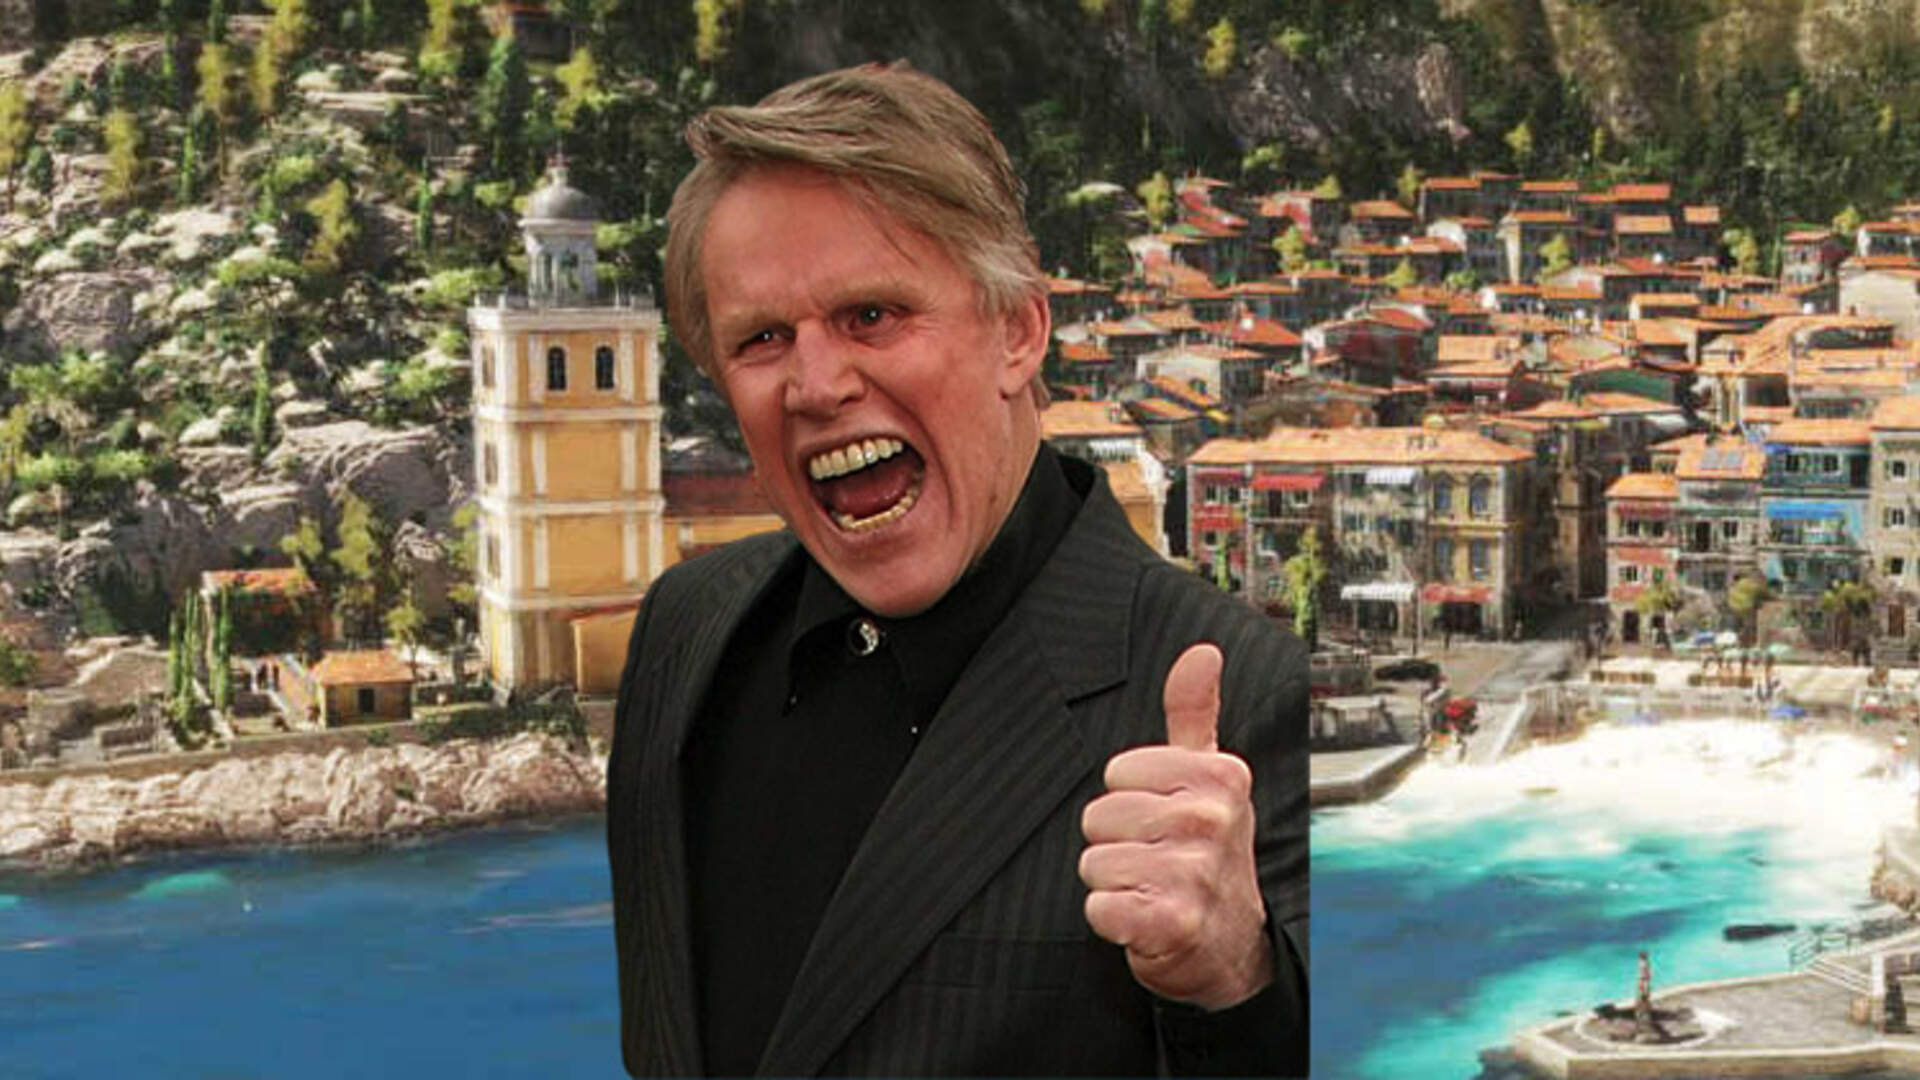 This Week, Hitman Becomes a Gary Busey-Specific Murder Simulator